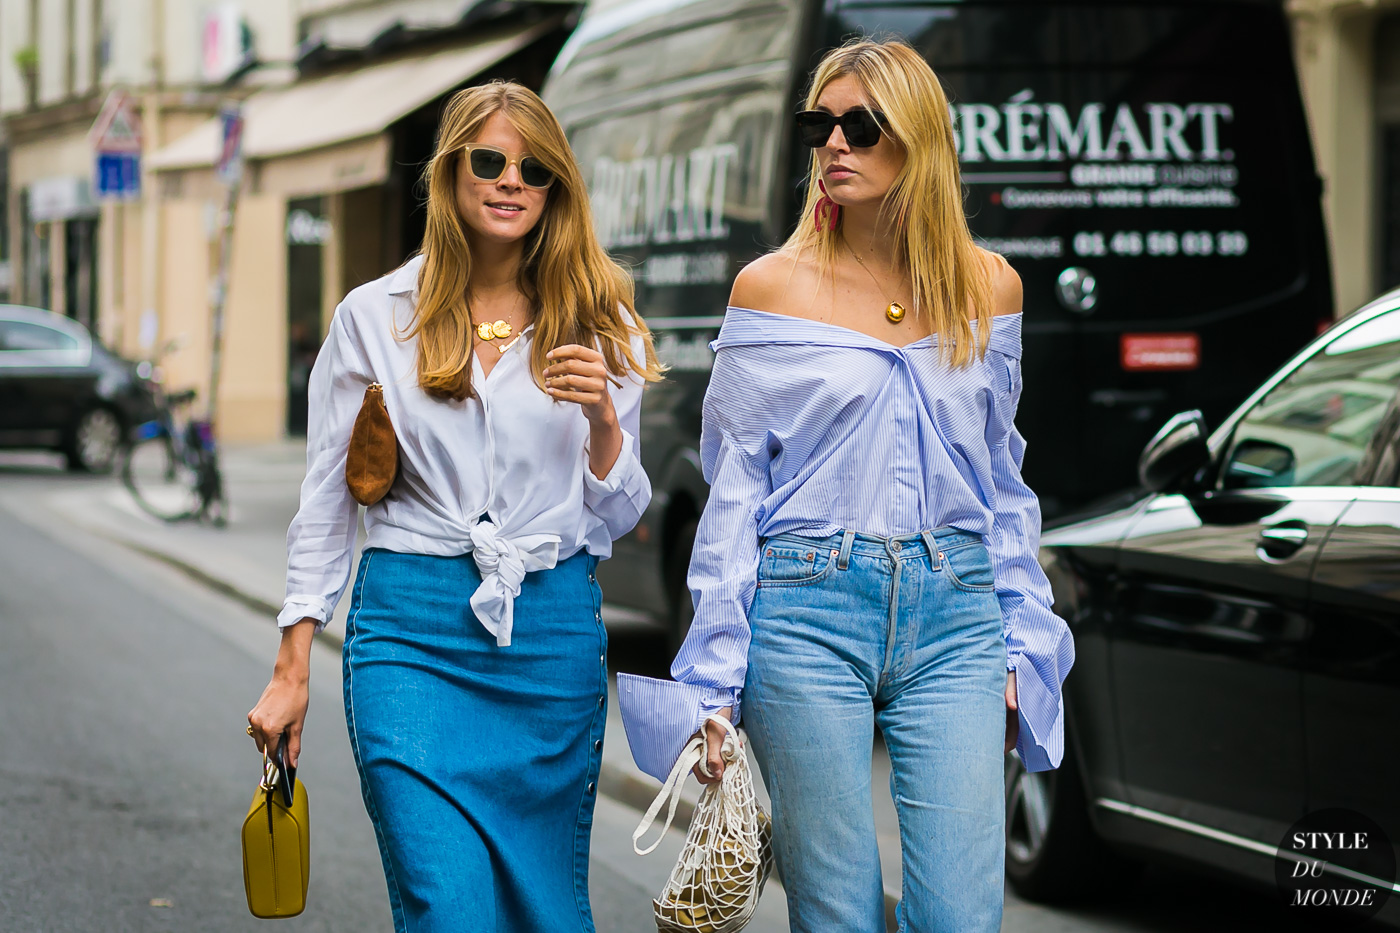 Monica Ainley and Camille Charriere by STYLEDUMONDE Street Style Fashion Photography0E2A5517